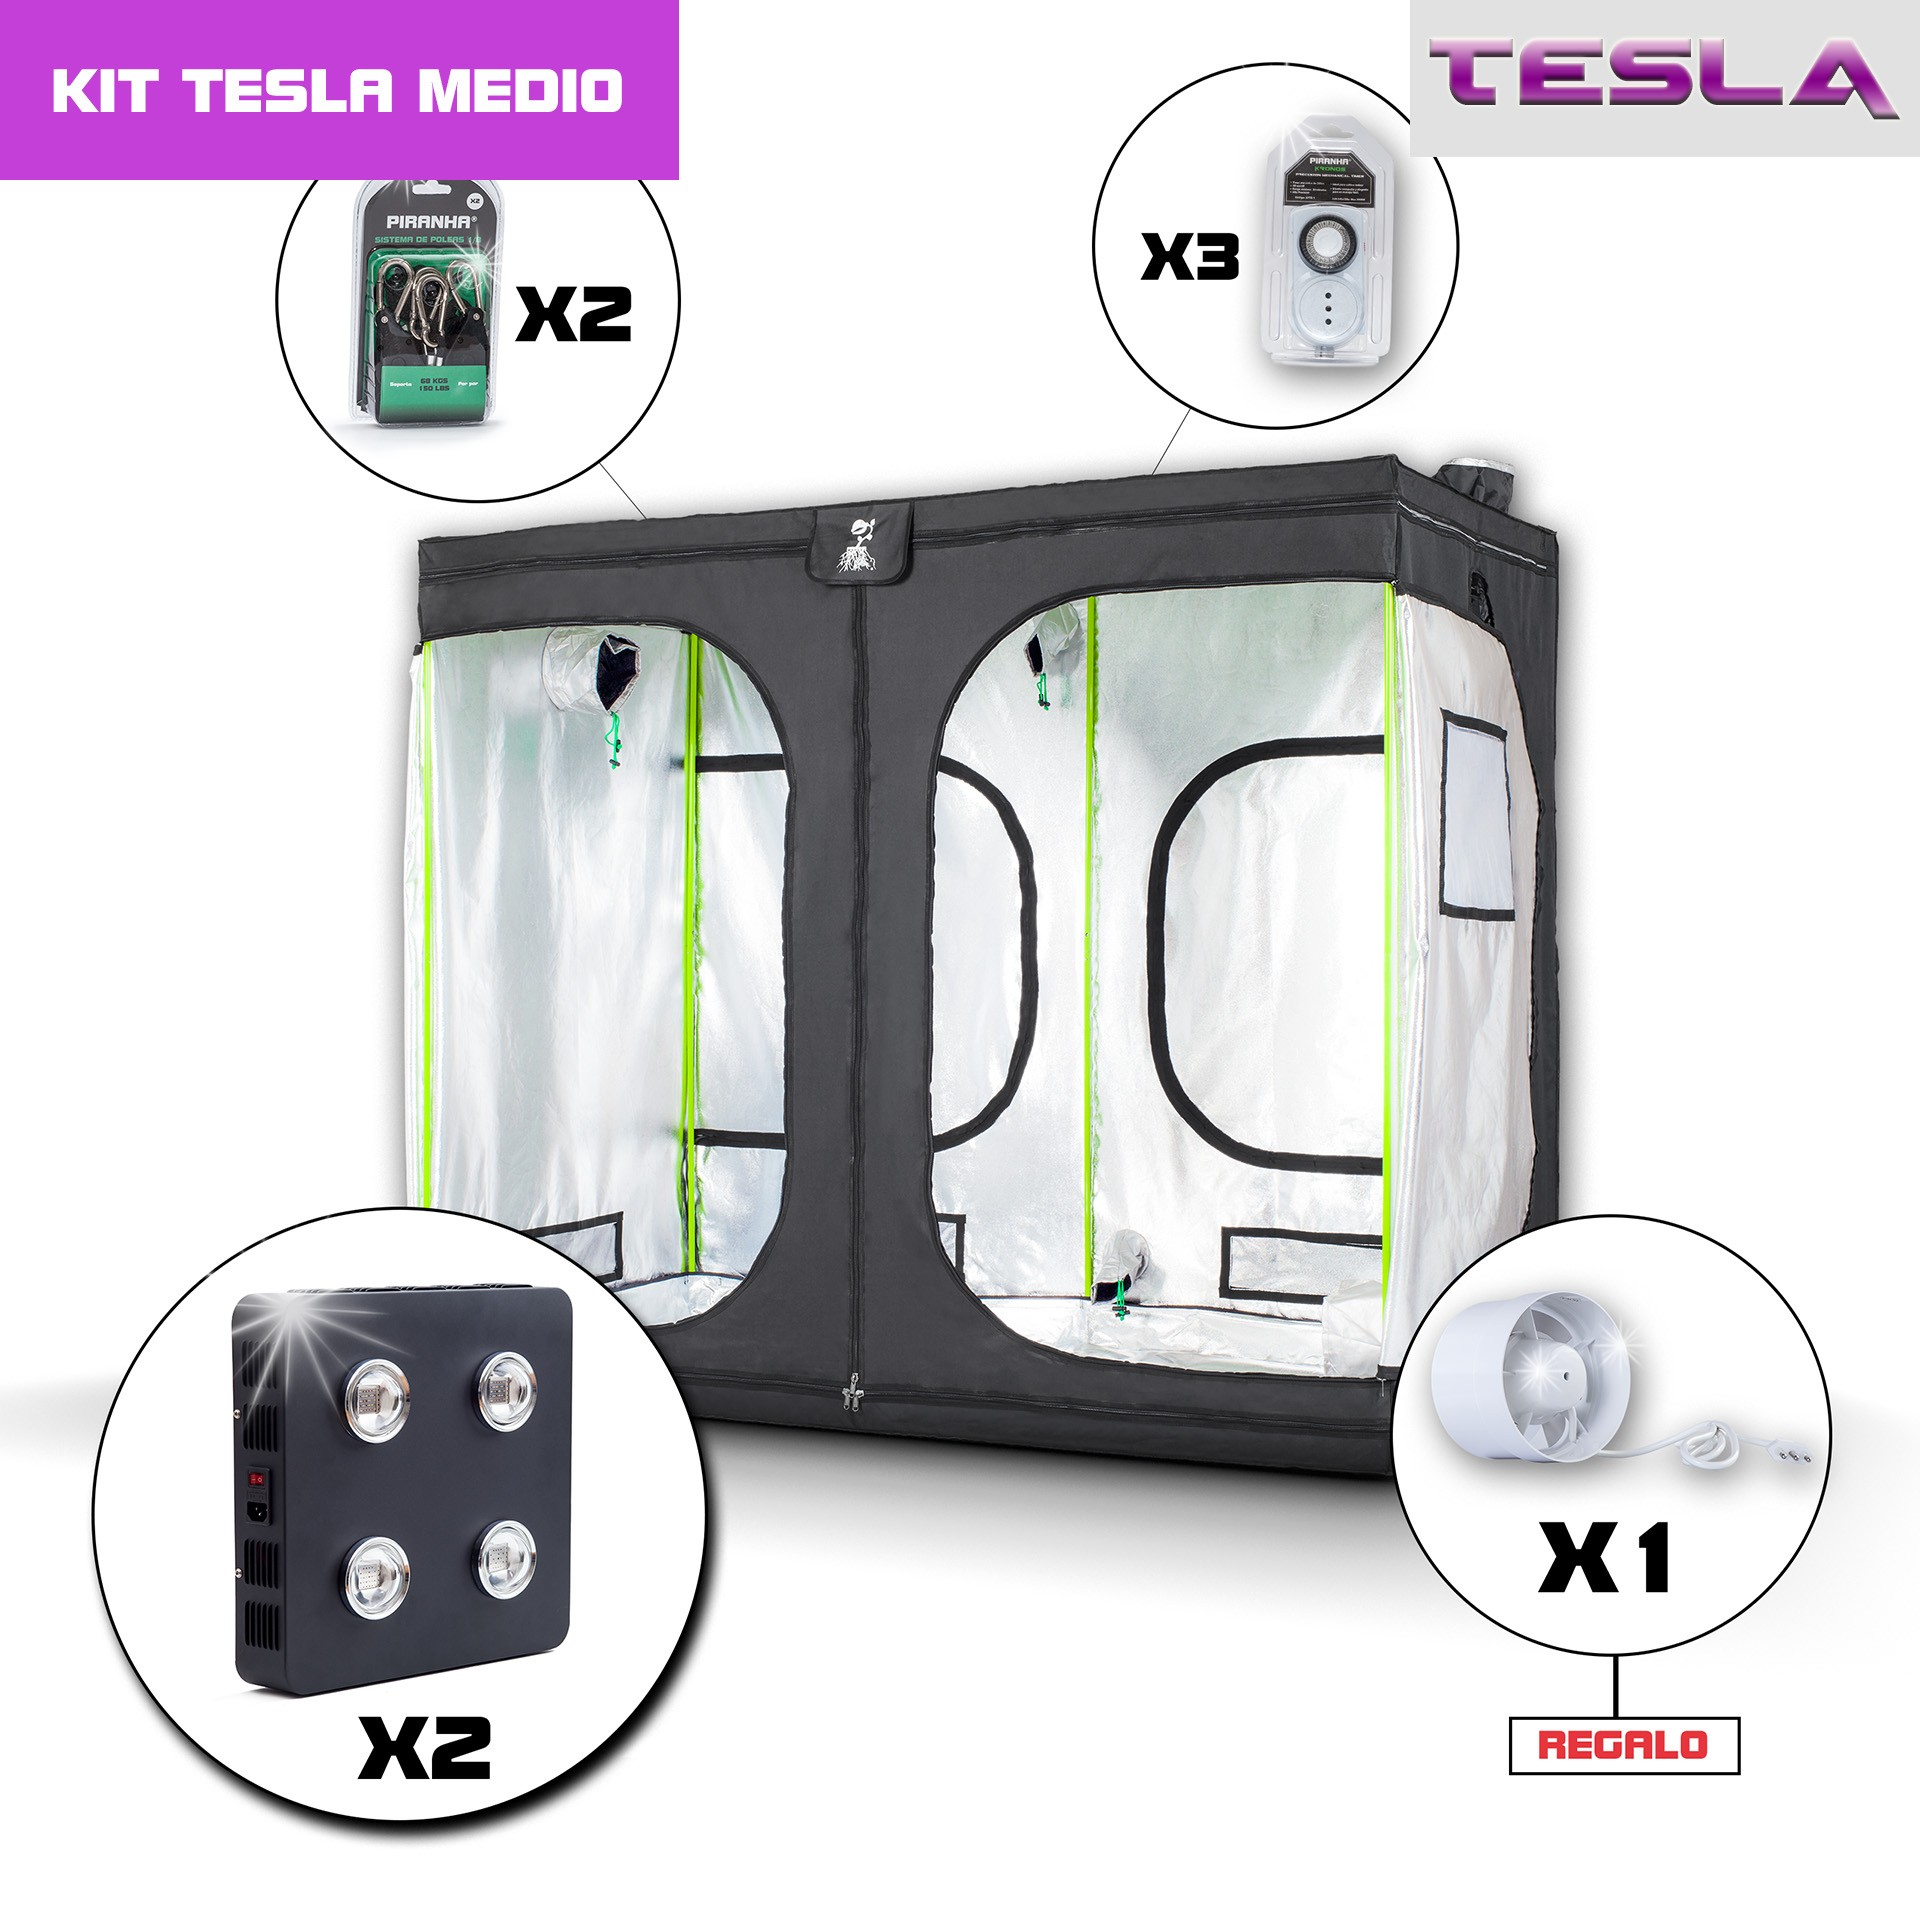 Kit Tesla 240 - T360W(X2) Medio